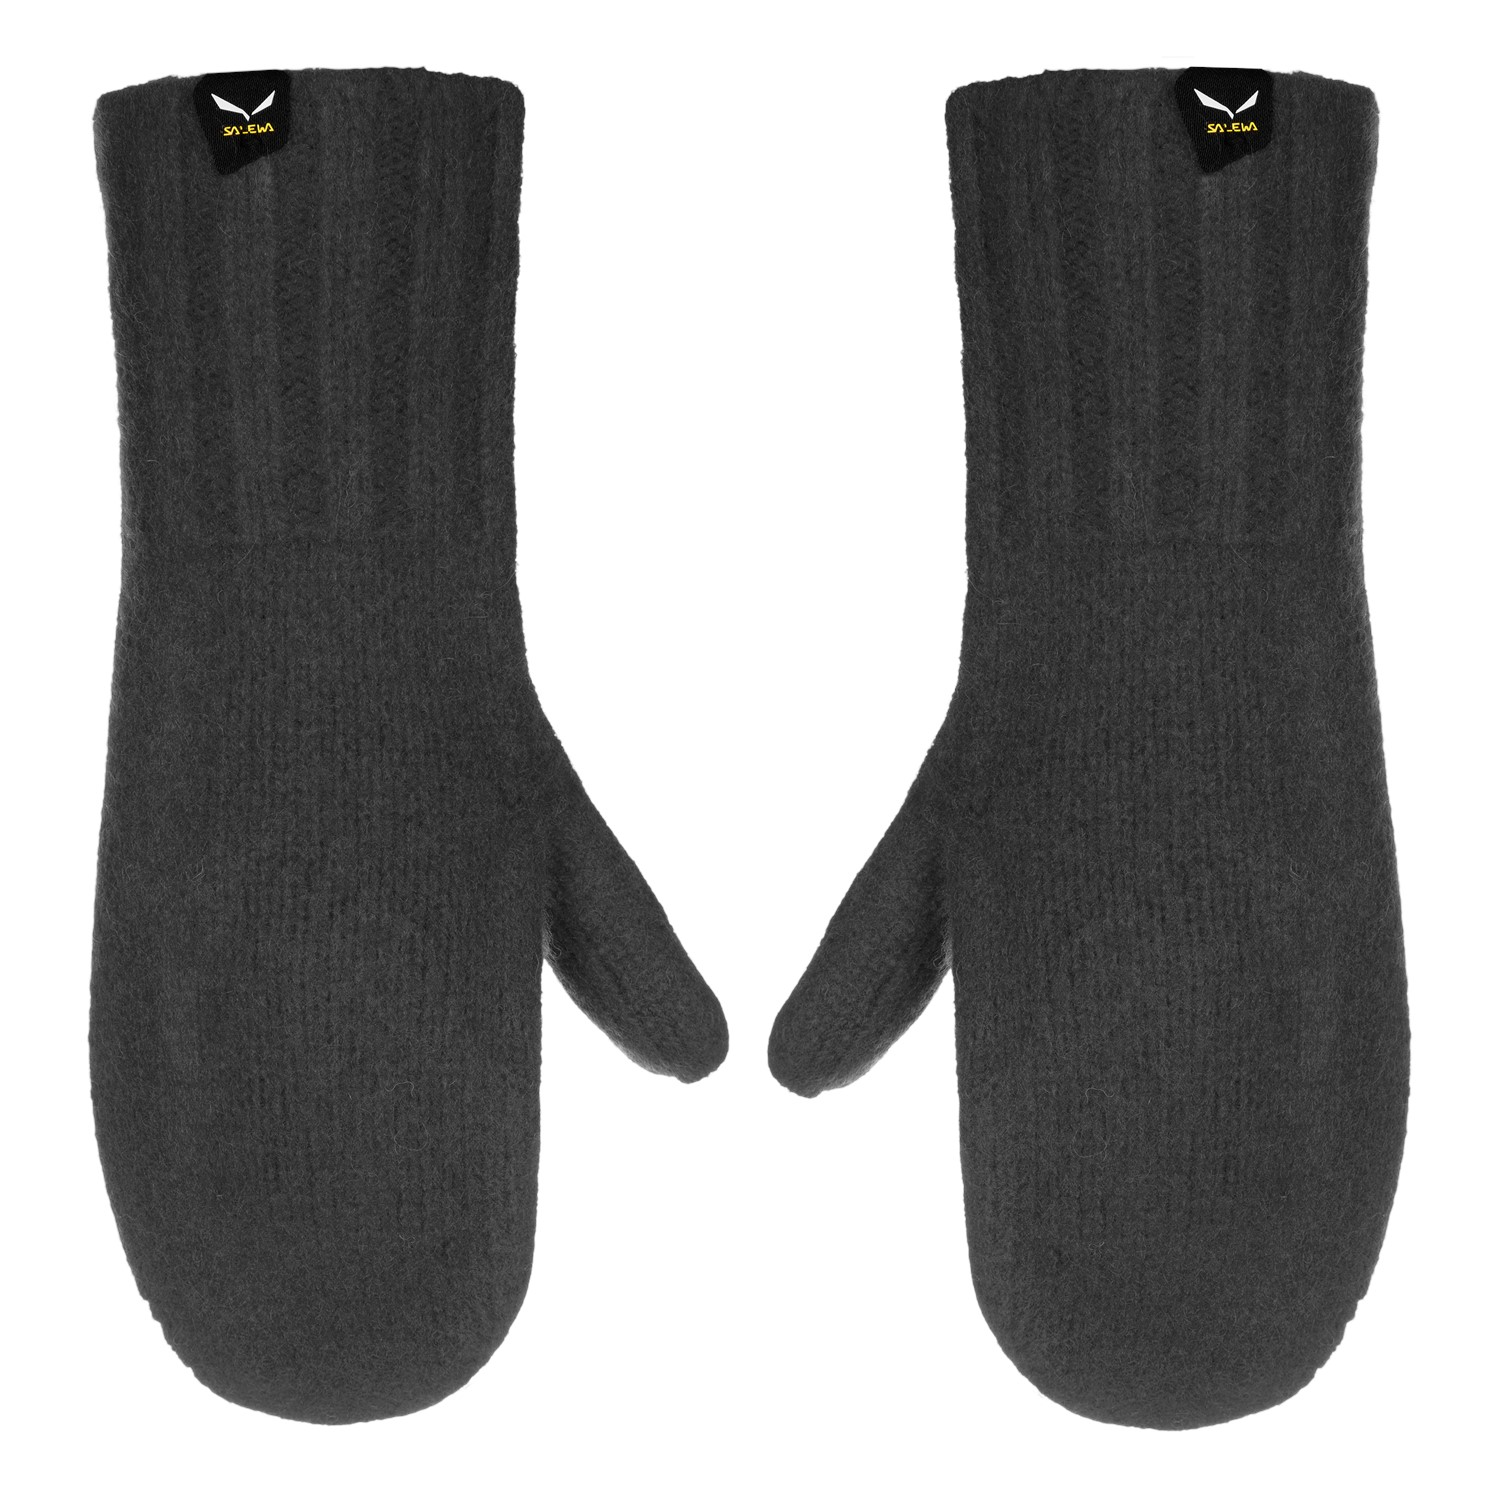 Salewa WALK WOOL 2 MITTEN-carbon-9 - Carbon - Gr. 9